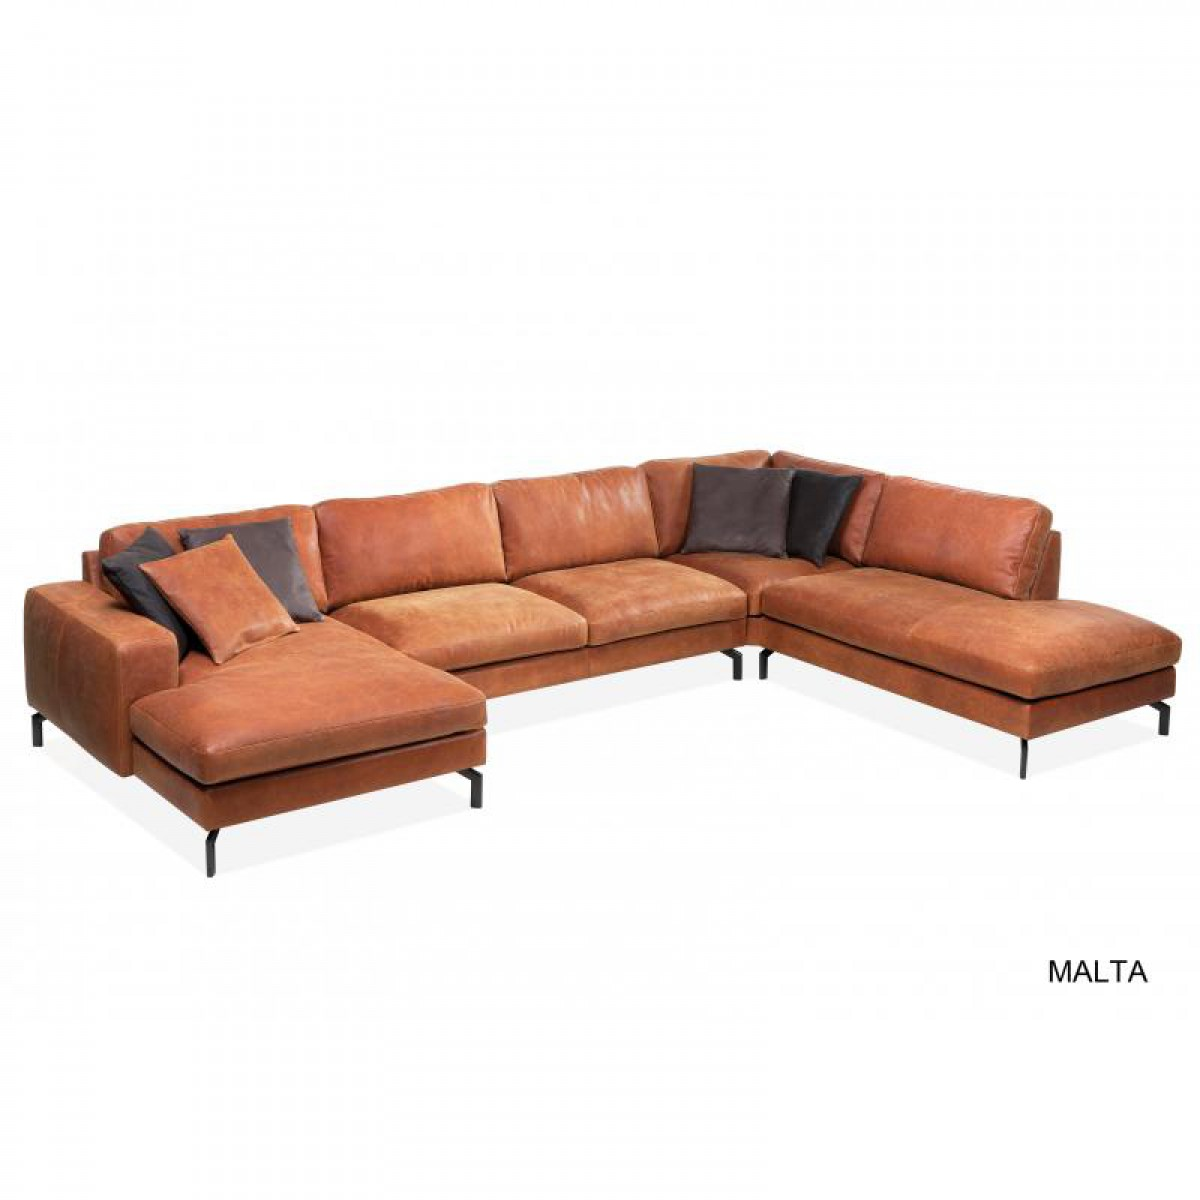 Malta chaise longue arm links | I Live Design on chaise furniture, chaise recliner chair, chaise sofa sleeper,